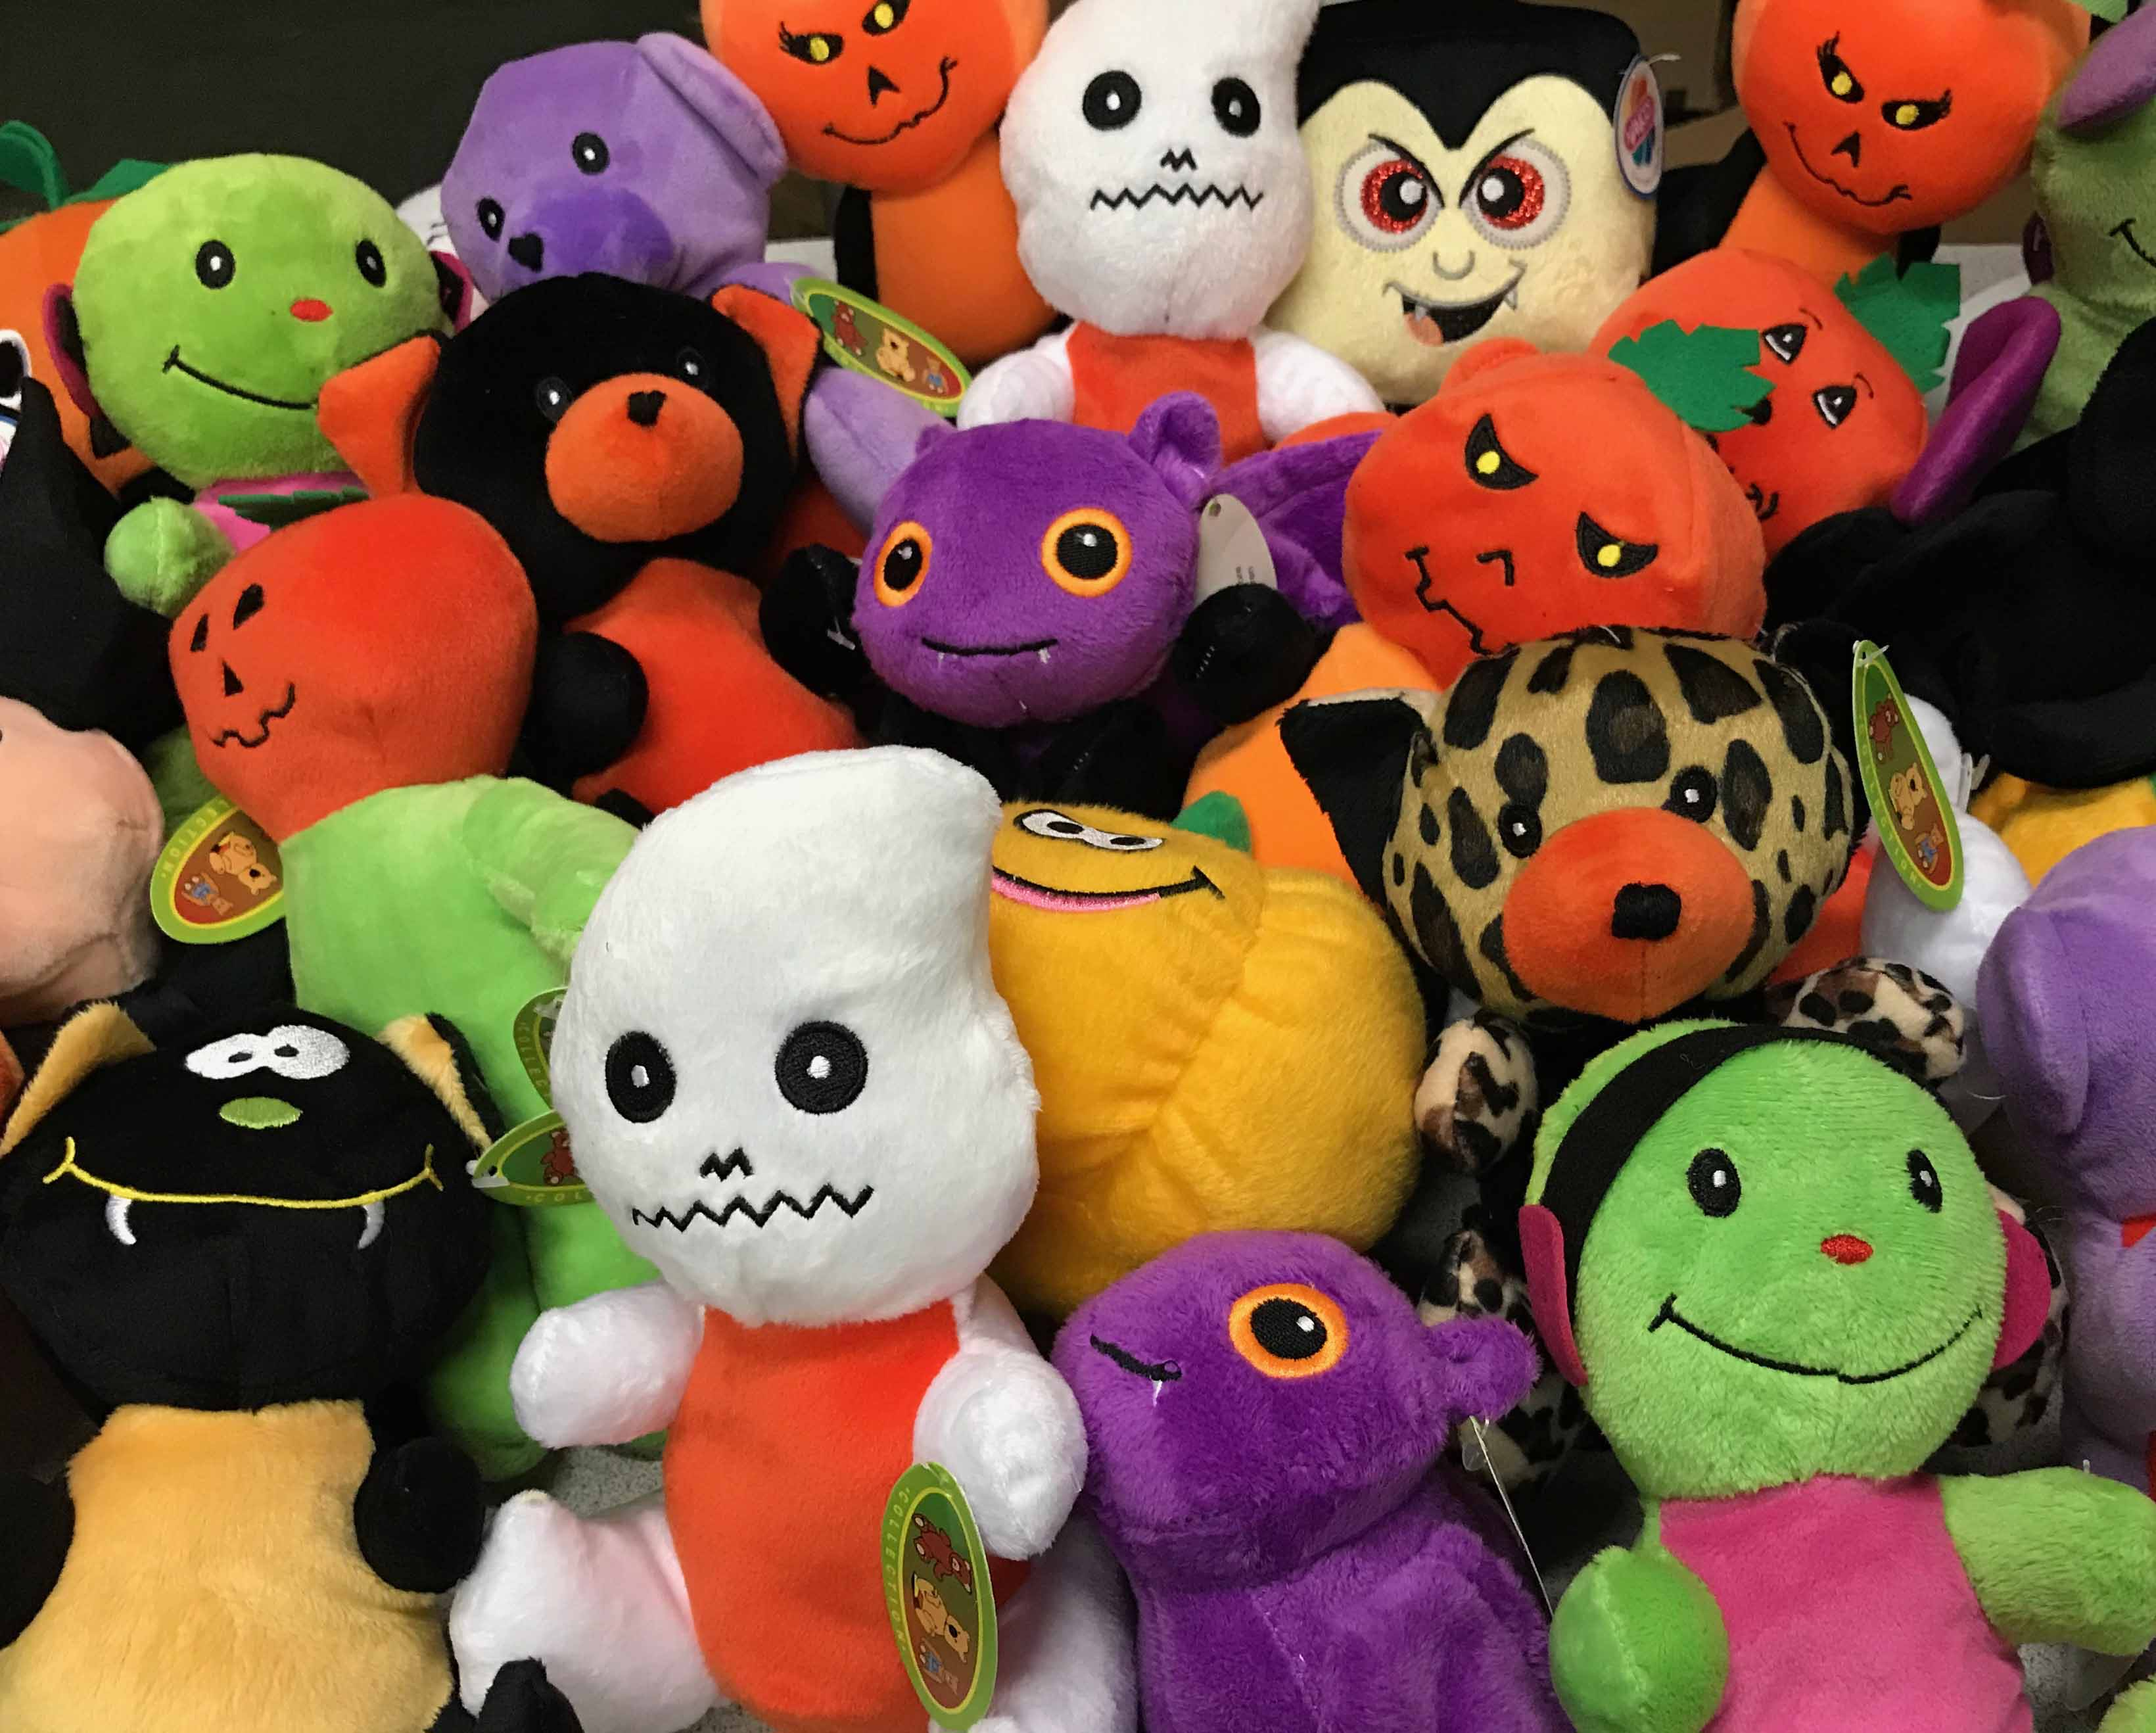 50-PLH79150 - SmartVending Halloween Plush Mix (Medium) 150 ct